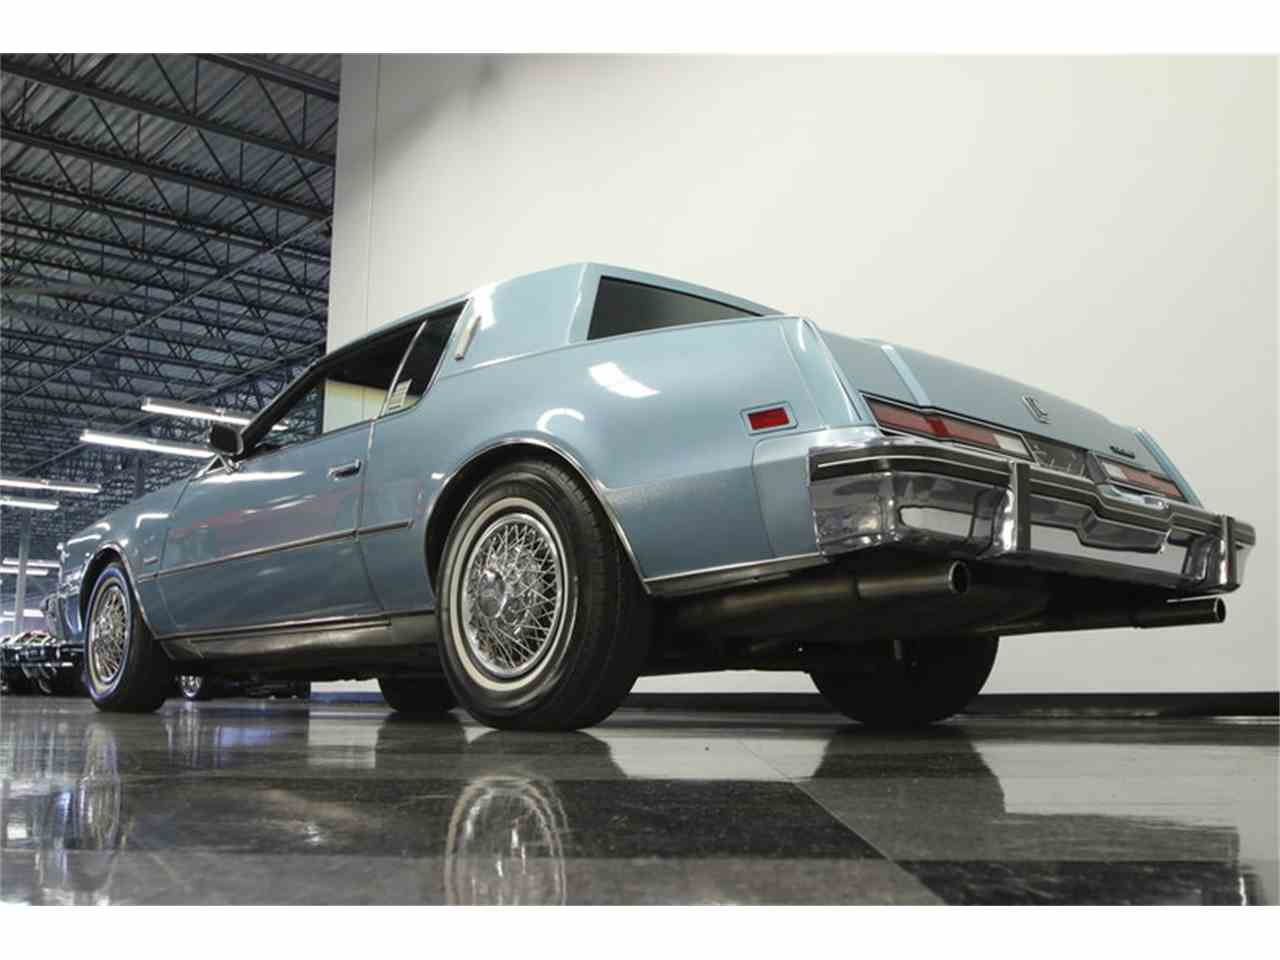 Large Picture of '85 Toronado located in Florida - $9,995.00 - JPY6